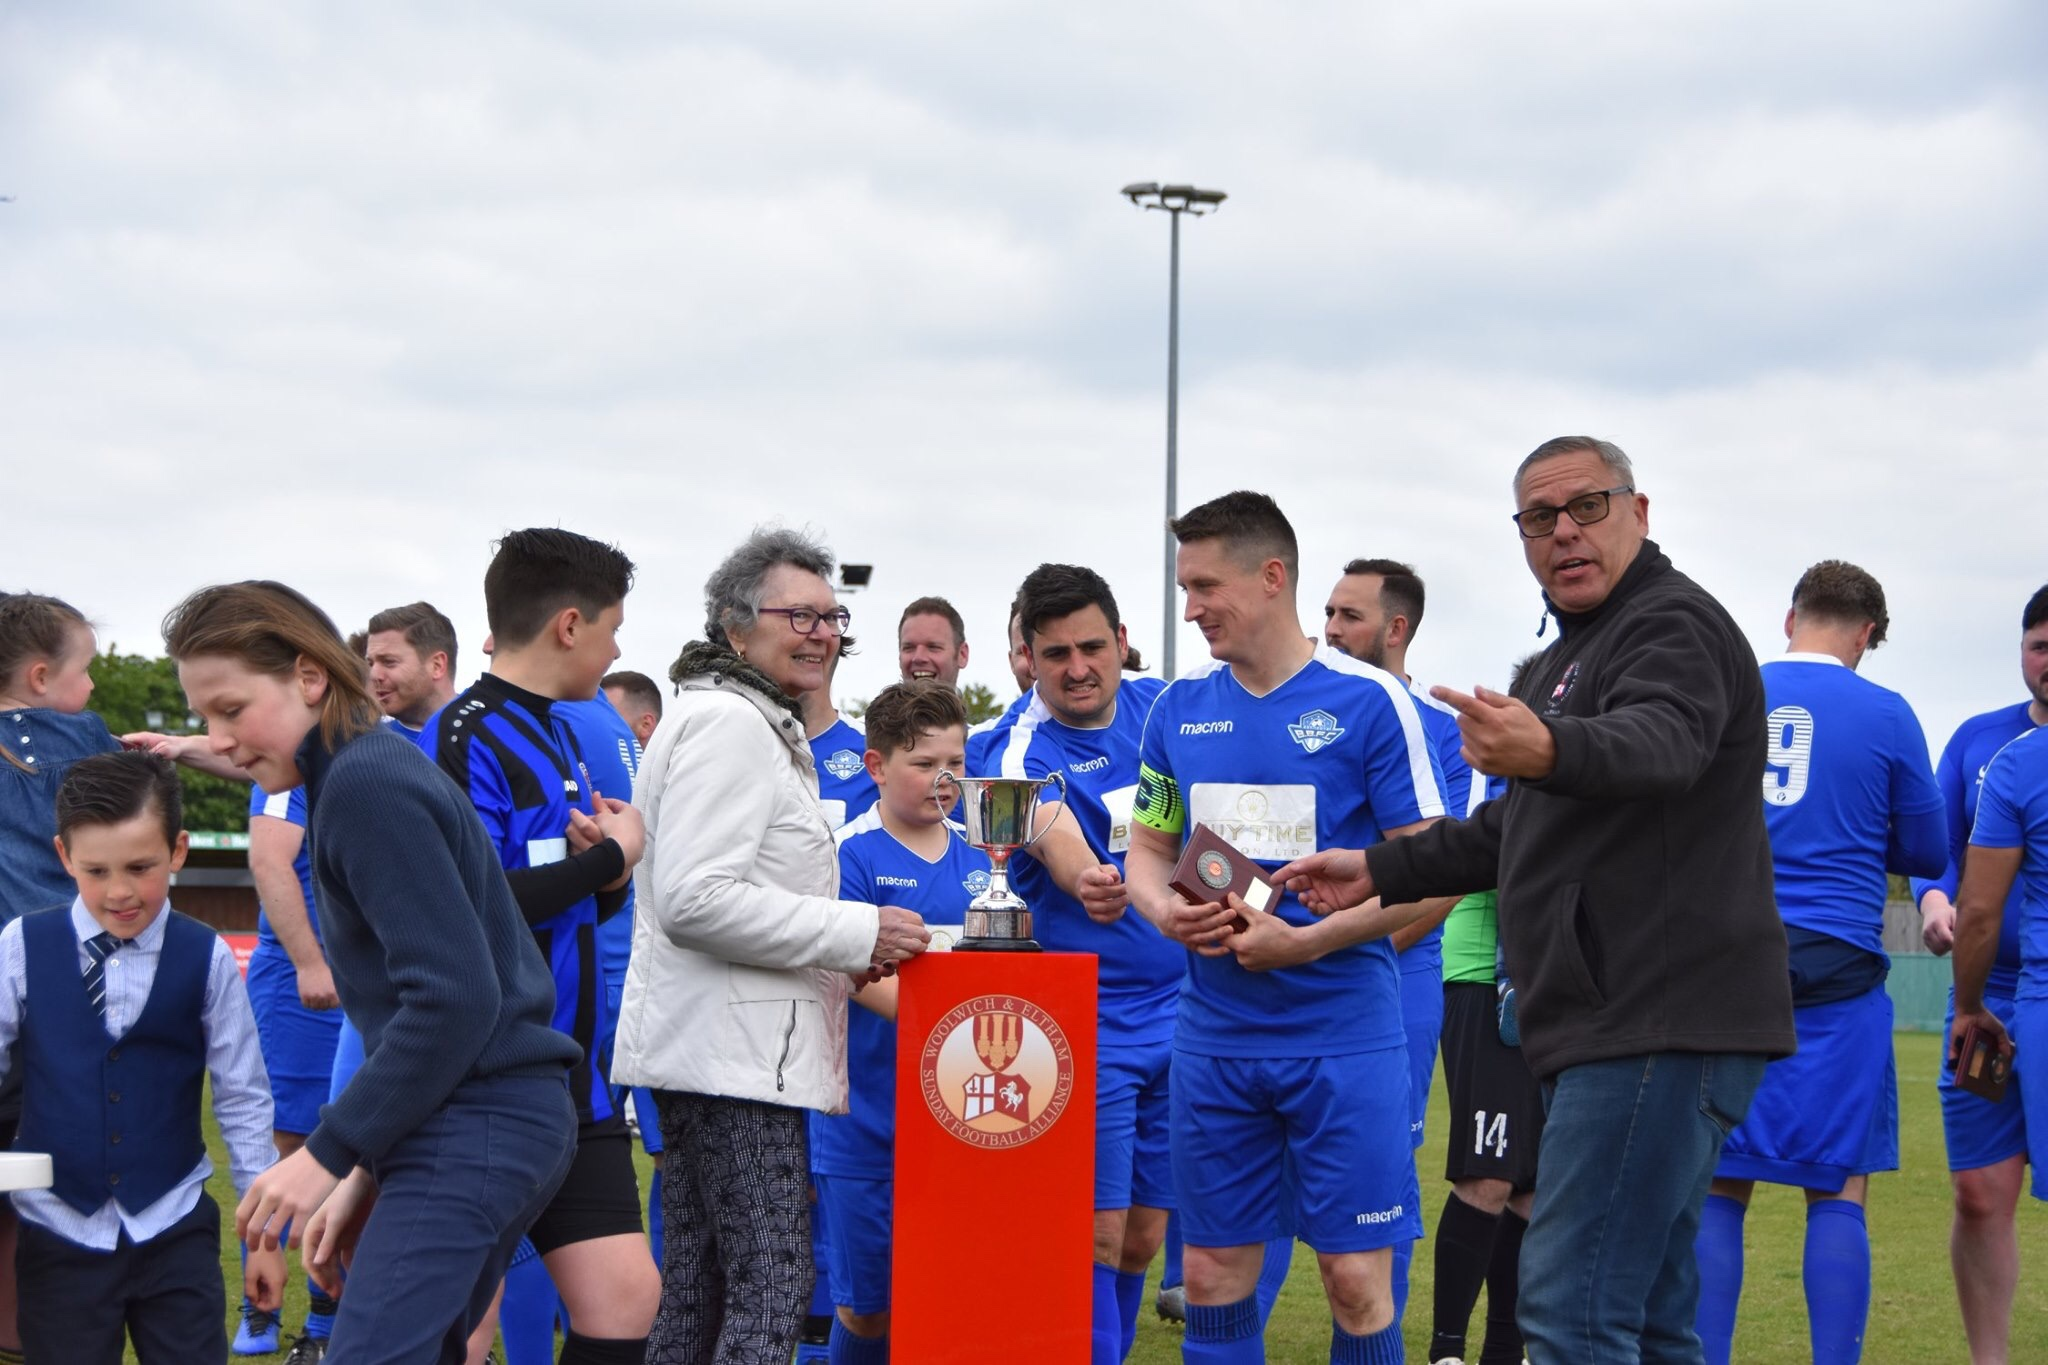 A Special Moment as the late Fred Jolly's wife, presents Burrage Blues with the Cup for 2018/19. The family only found out about the cup through the internet and the power of Social Media as the family and the league had lost contact. Contact now restored 😊